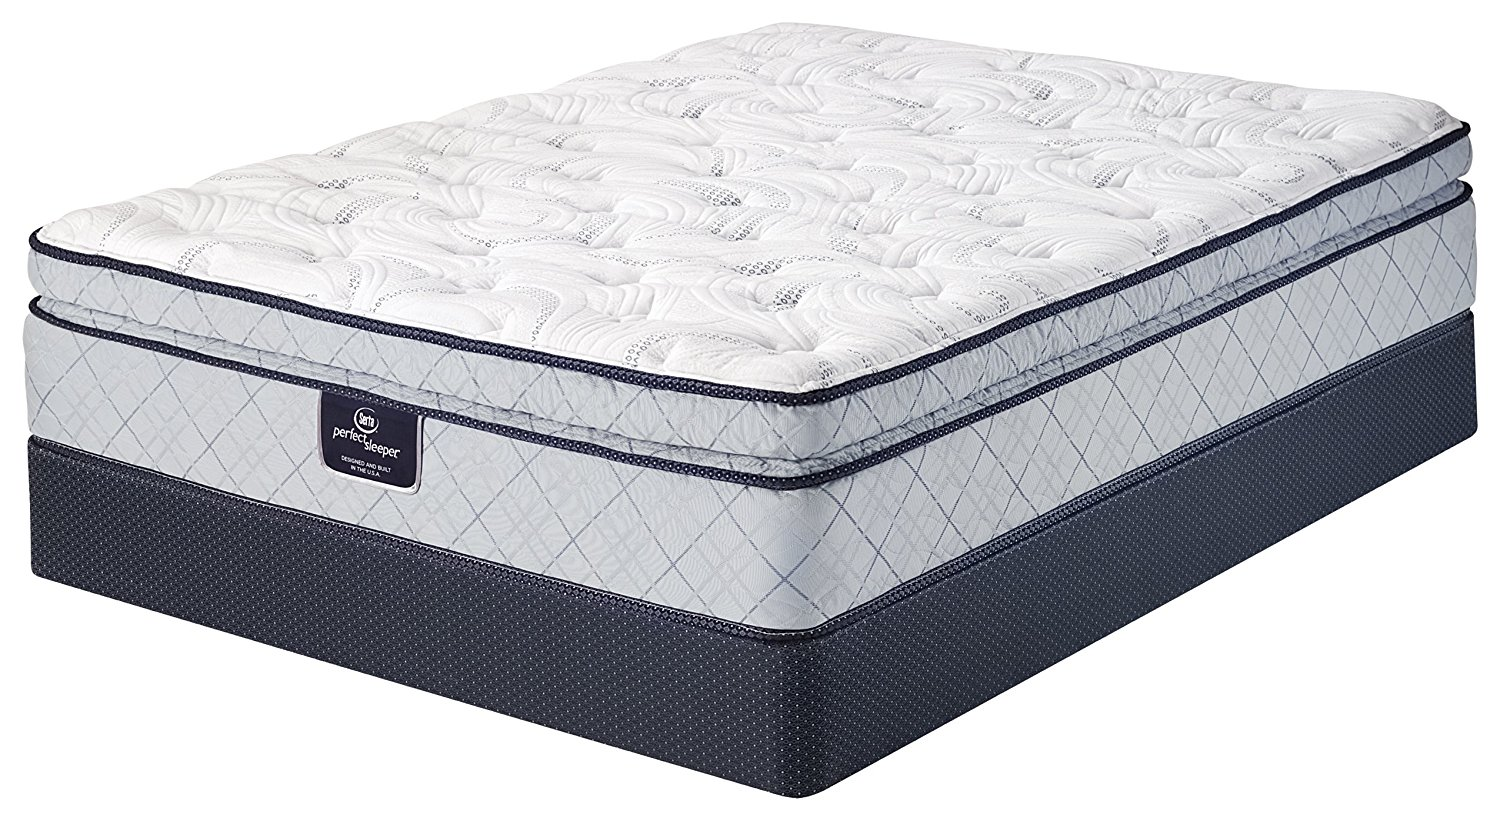 Stearns And Foster Reviews >> Serta Perfect Sleeper Lockland Pillowtop - Mattress Reviews | GoodBed.com